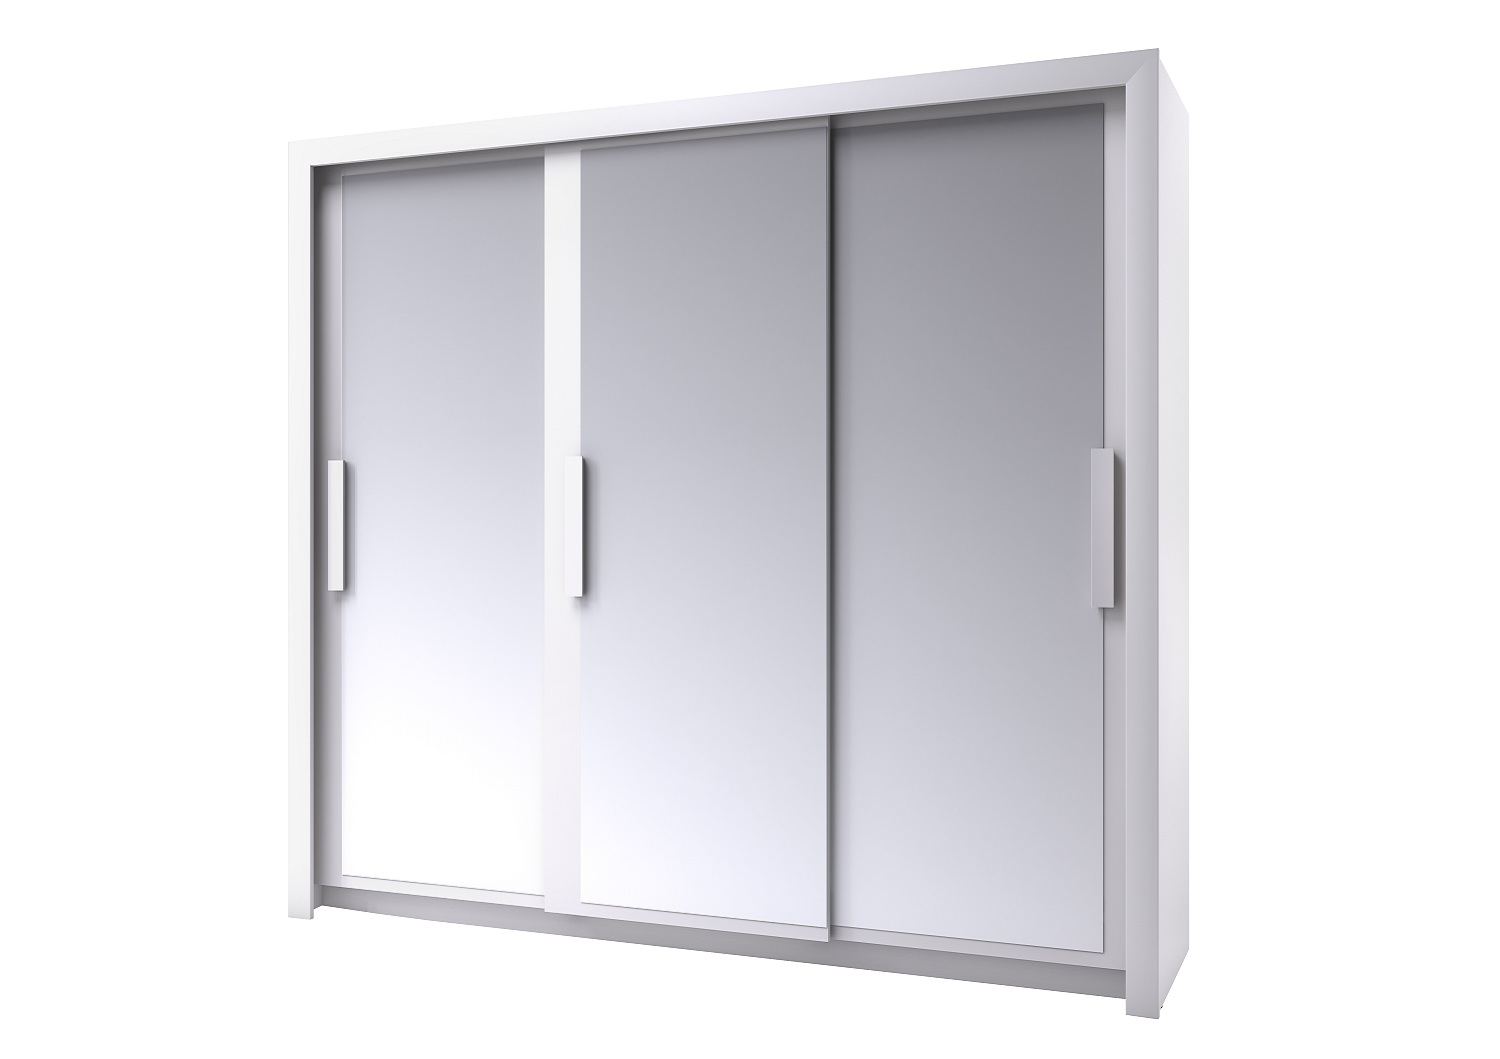 Bilrich Storage Furniture - Perfect Wardrobe 229cm White